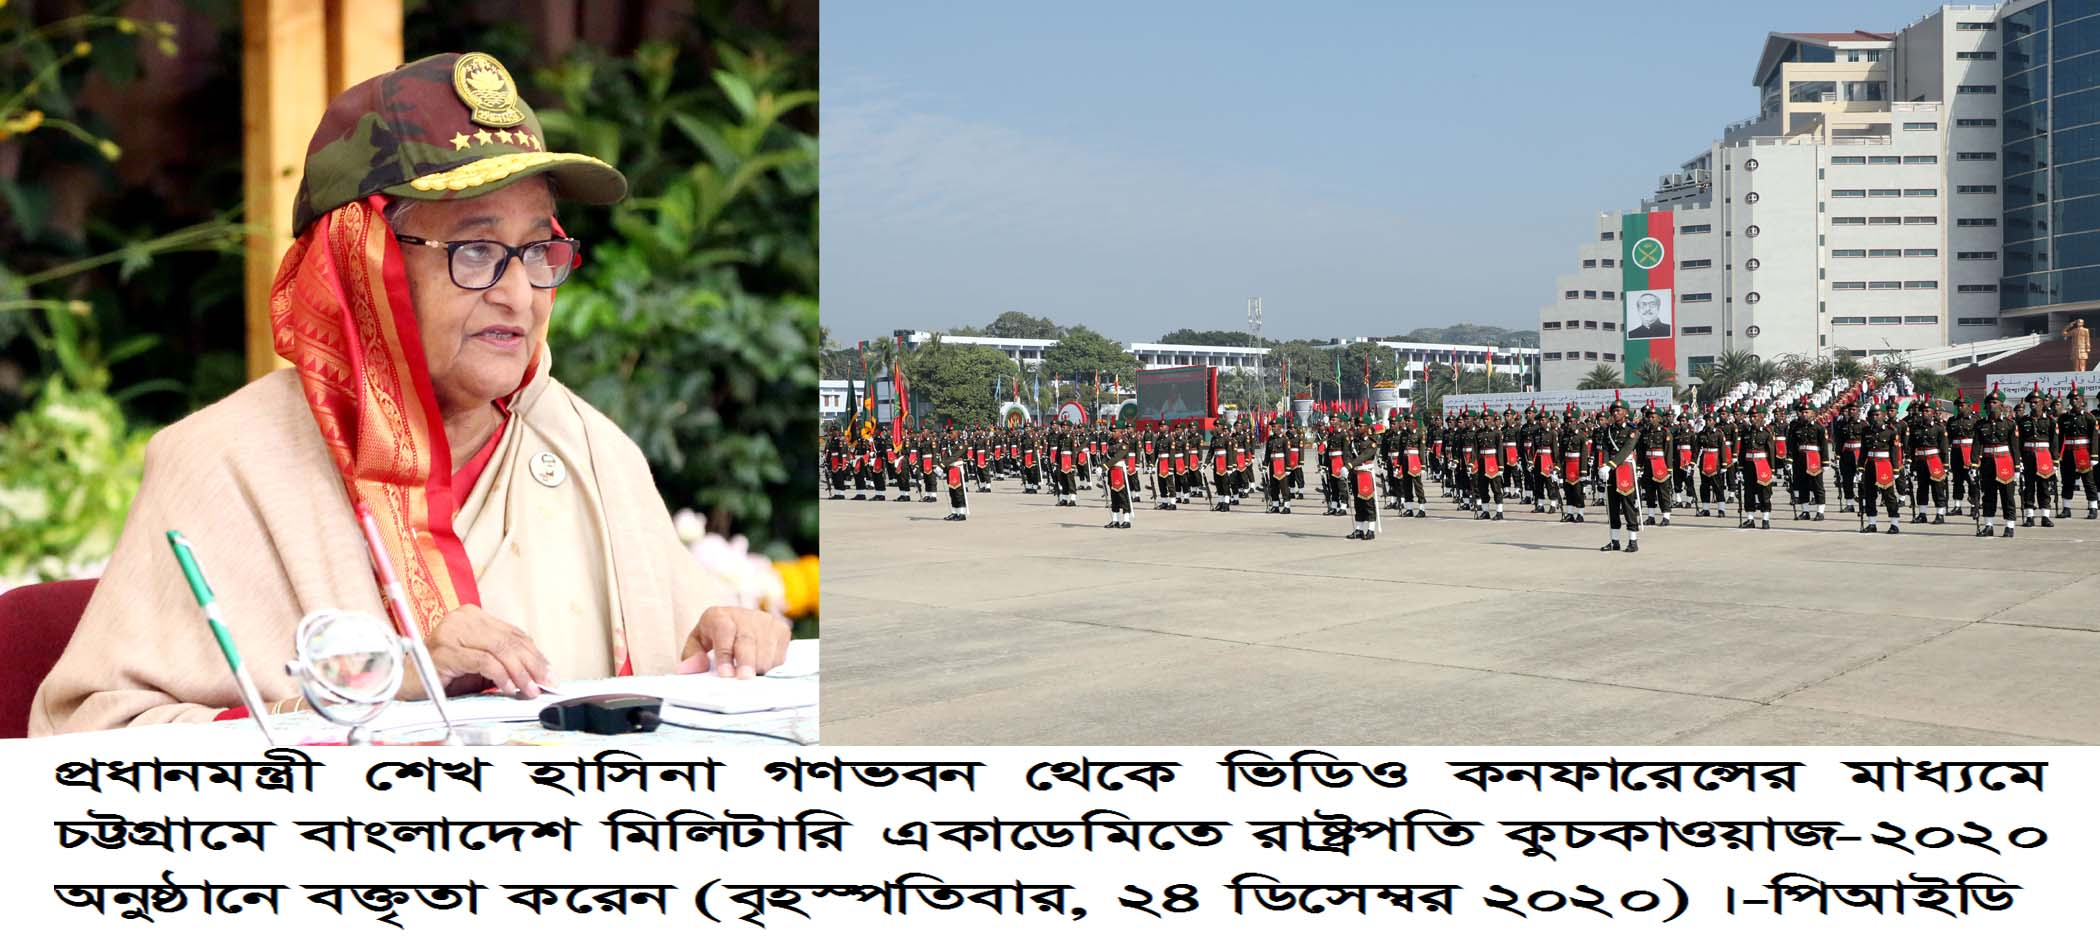 Sheikh Hasina participates in Army event